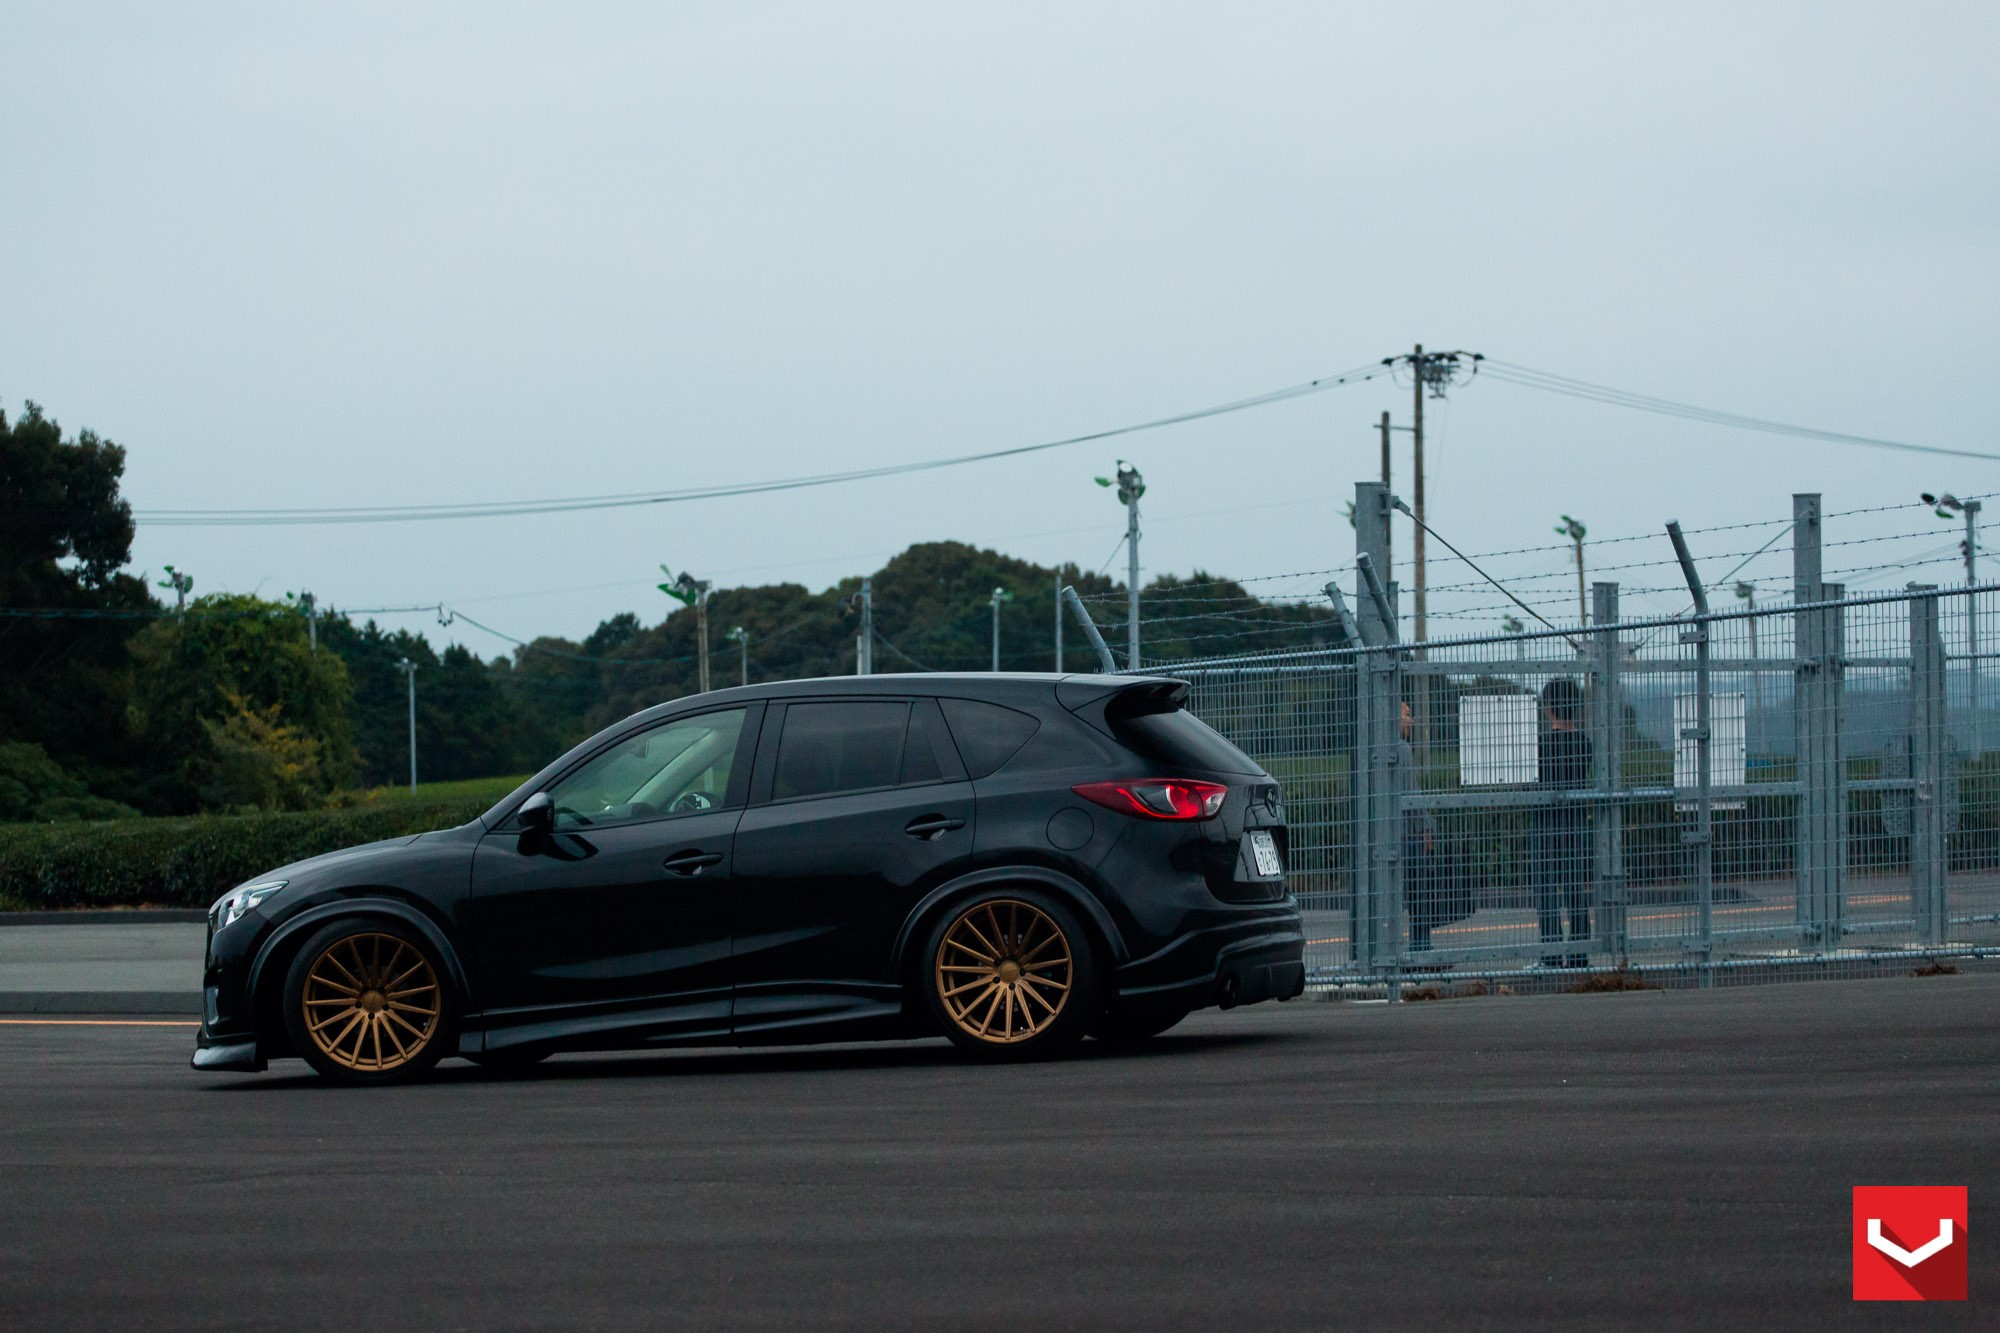 Mazda Cx 5 Tuned With Vossen Wheels And Air Suspension